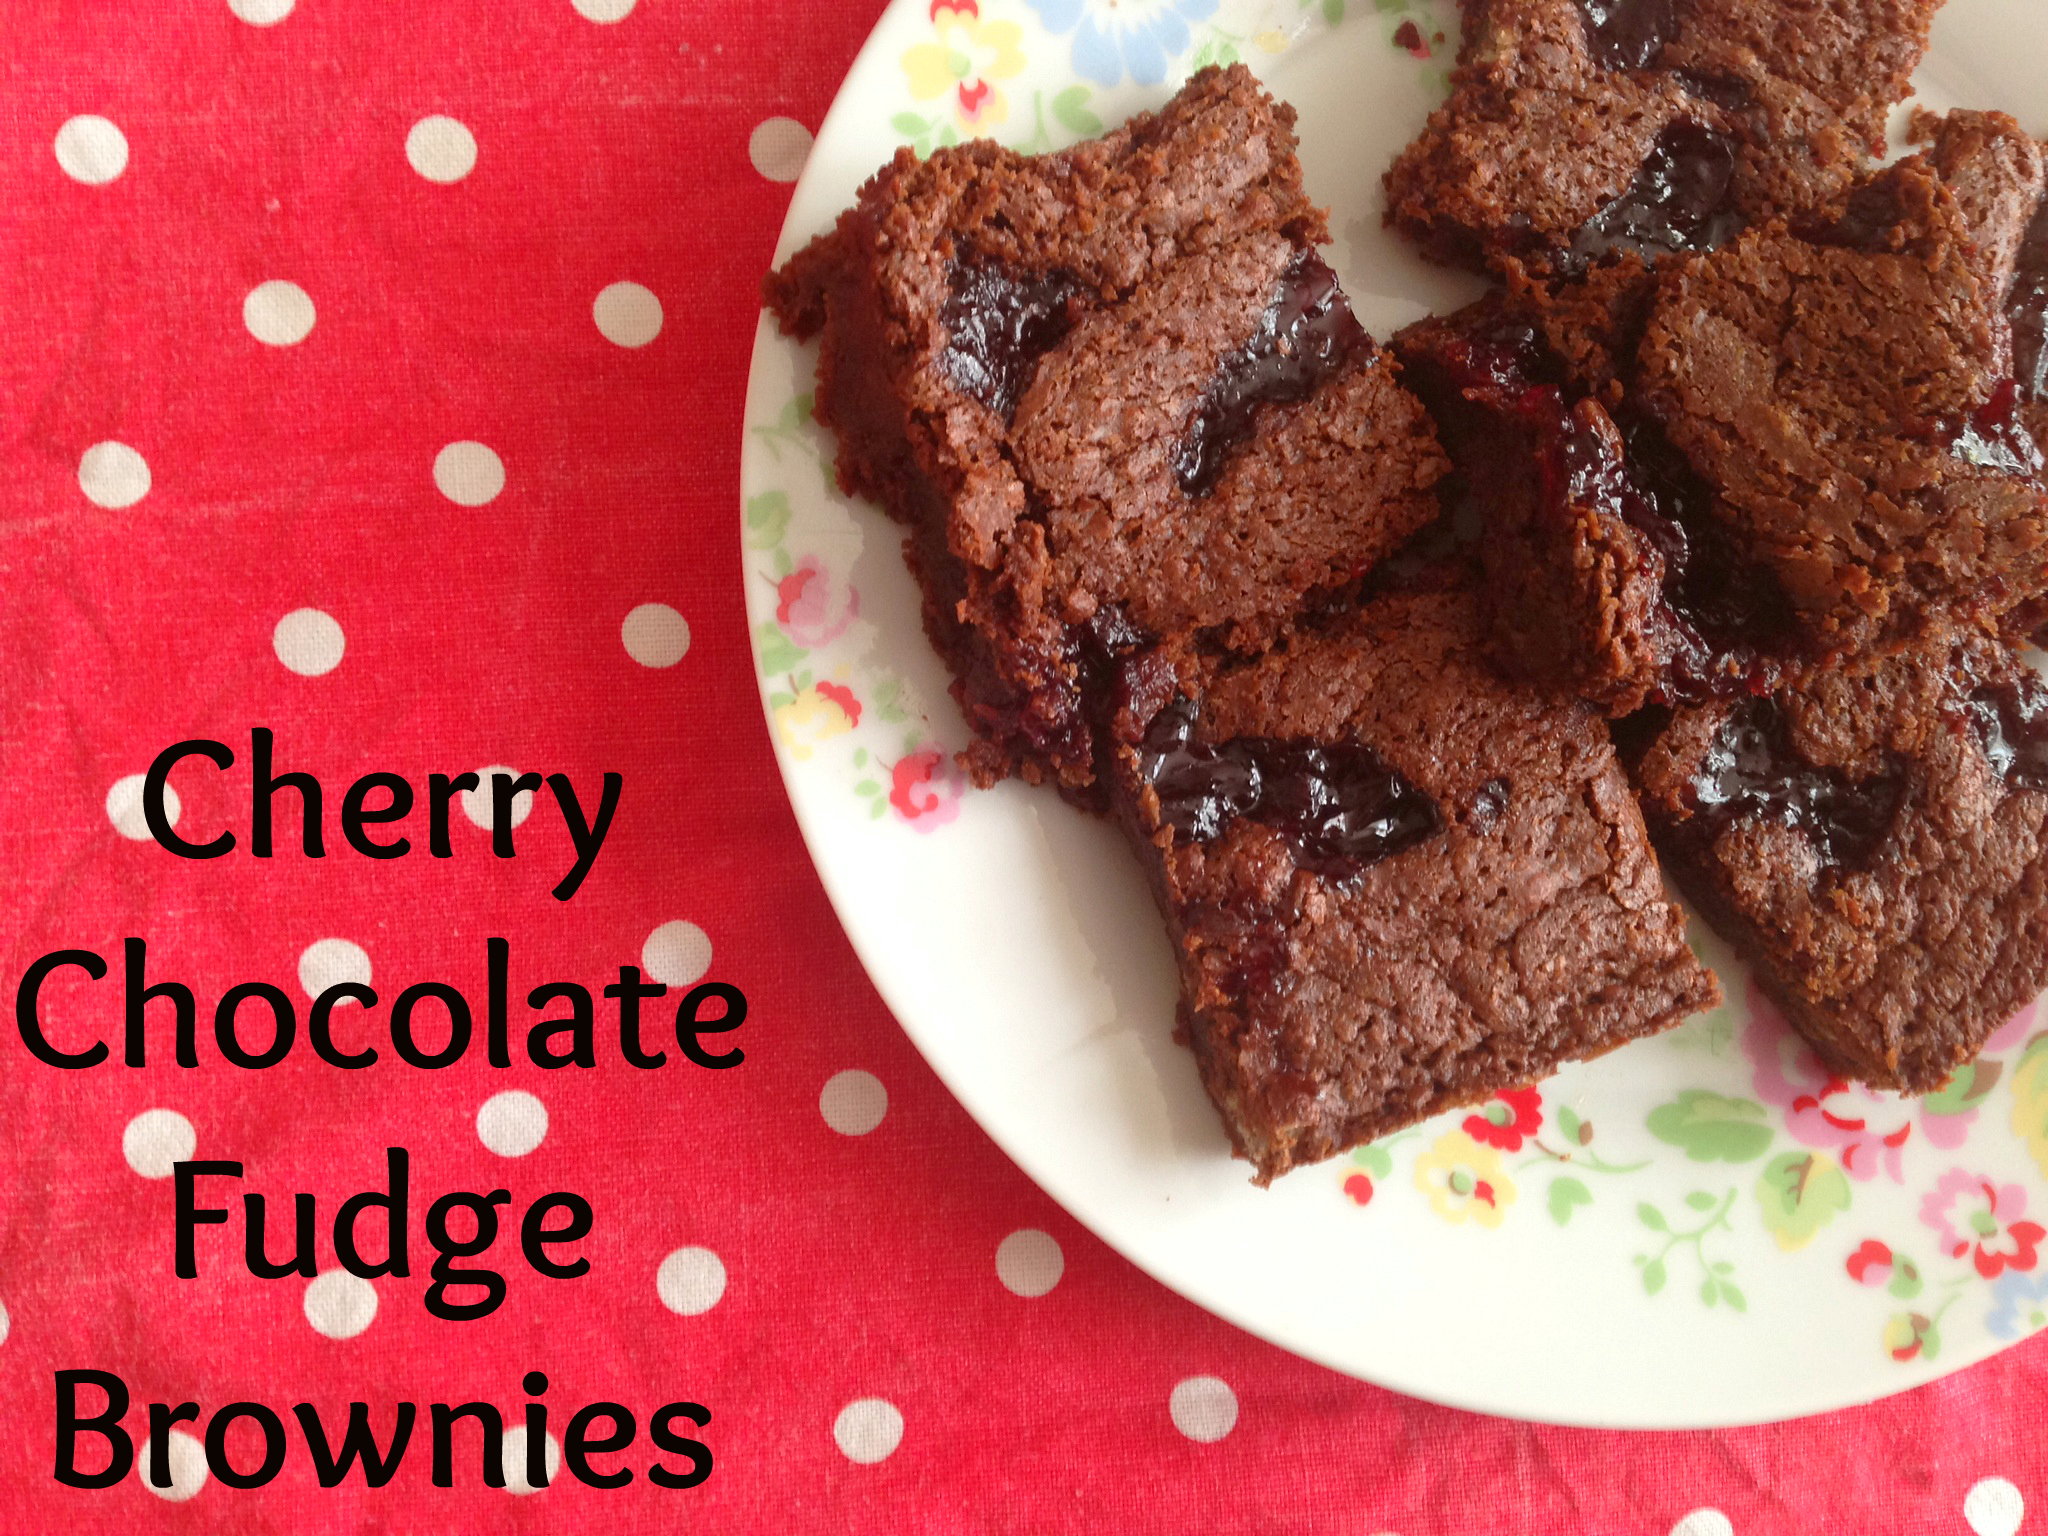 Cherry Chocolate Fudge Brownies